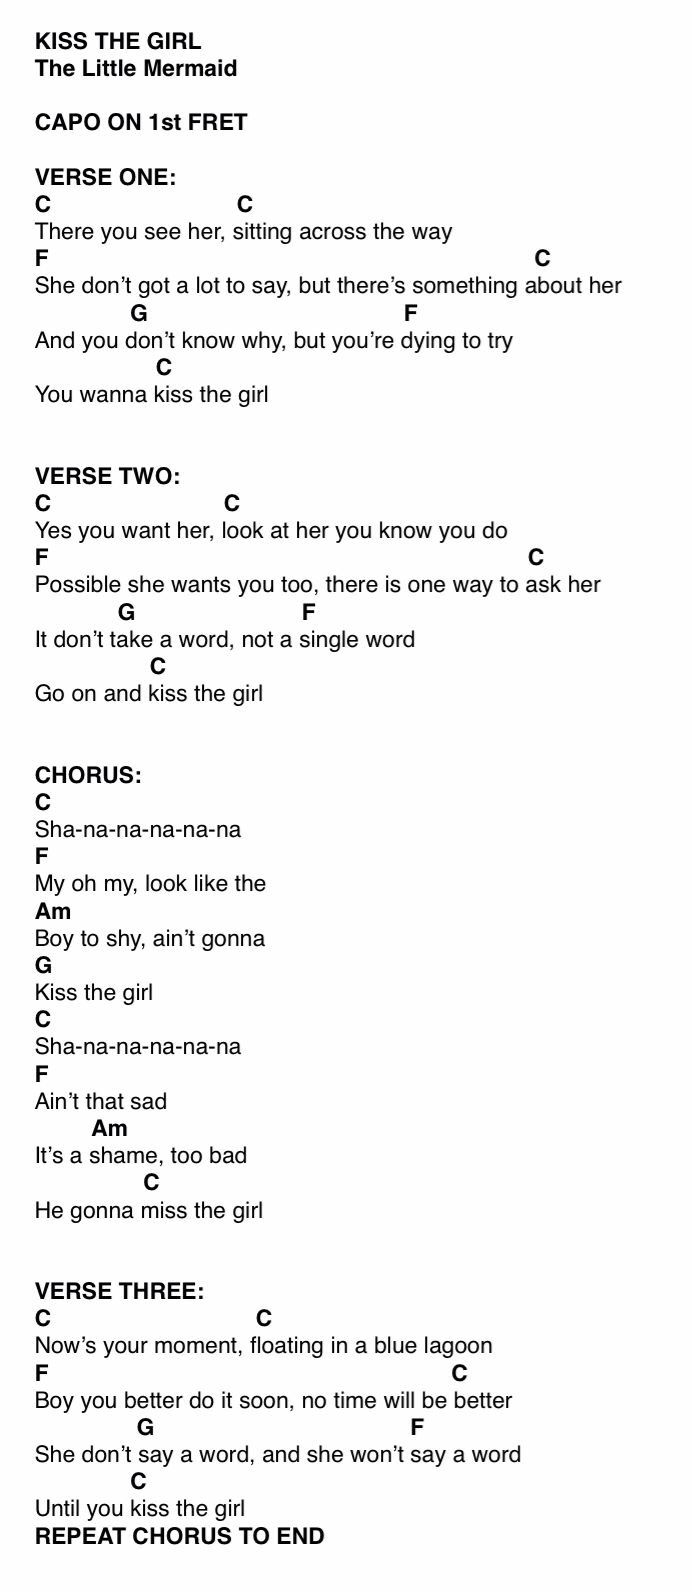 Kiss the girl the little mermaid guitar lessons for children kiss the girl the little mermaid ukulele tabsguitar hexwebz Choice Image